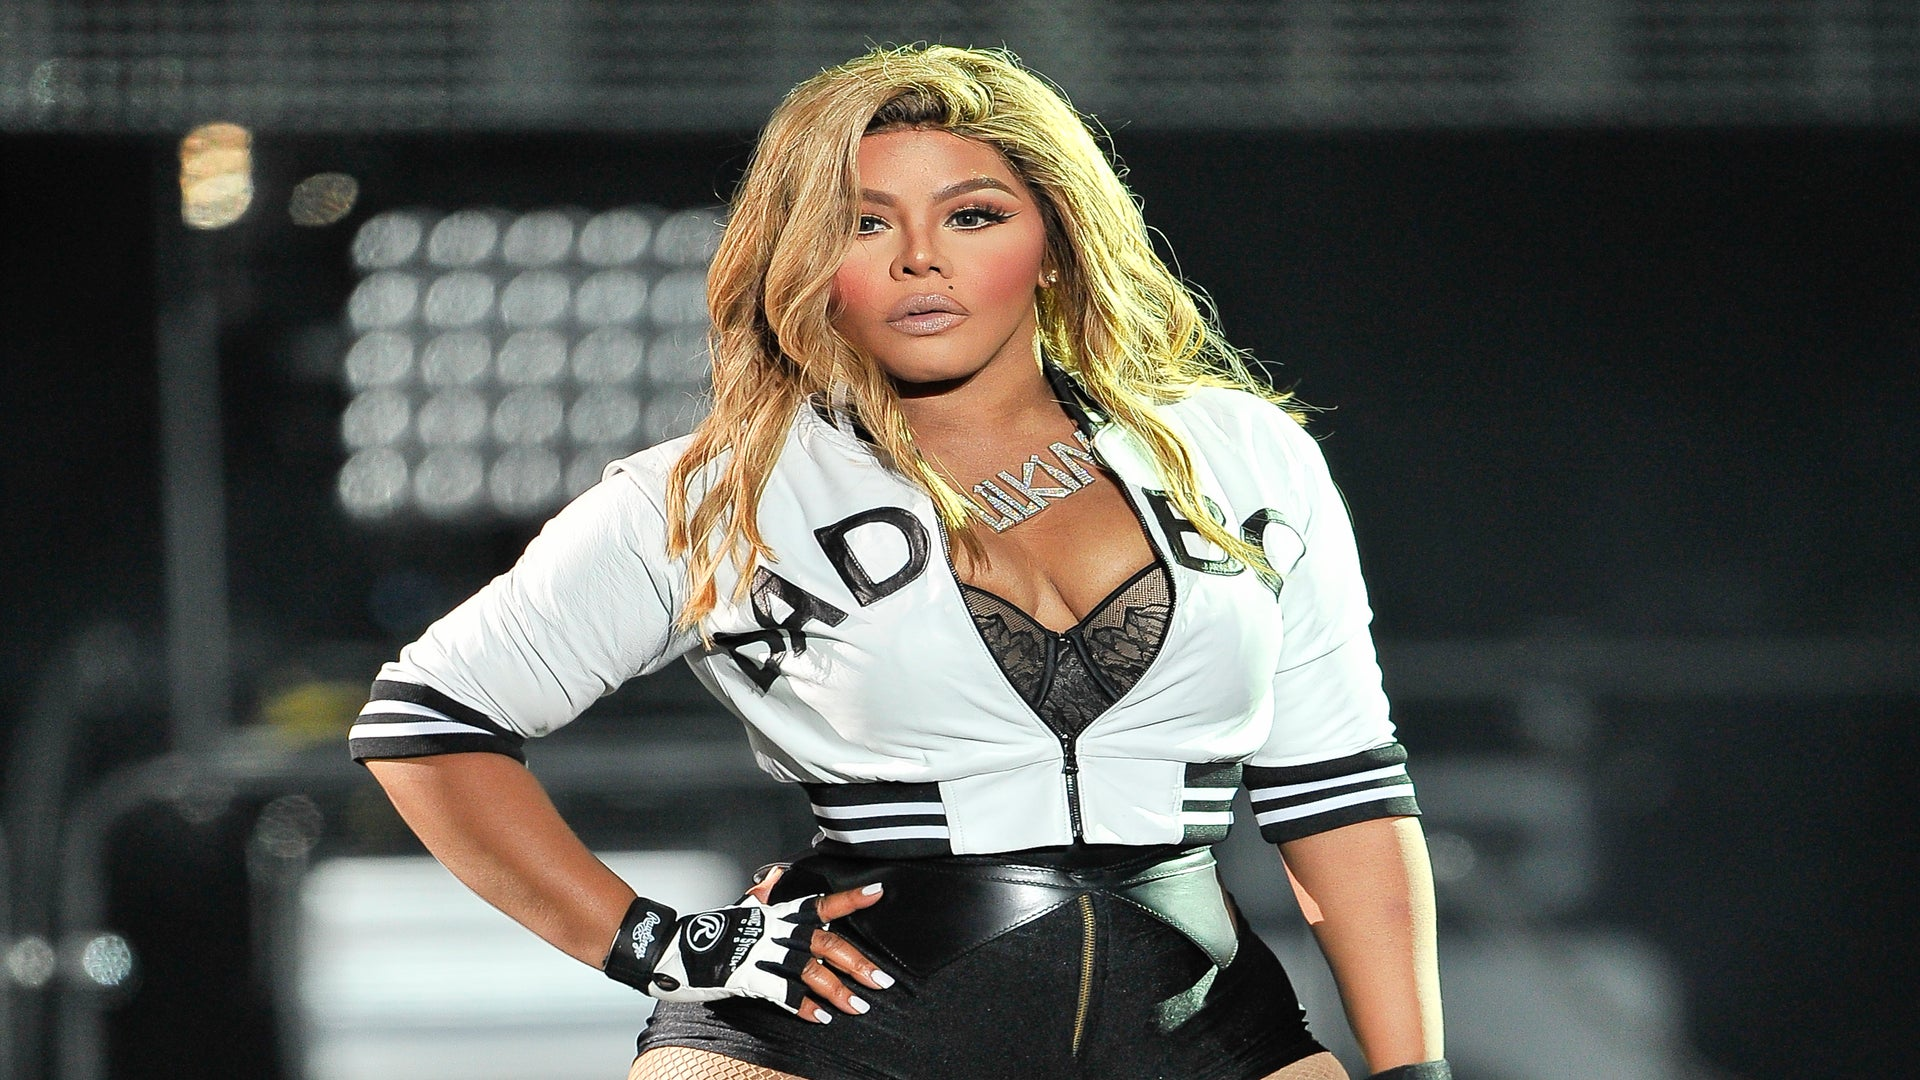 Lil' Kim Claps Back Over Skin Bleaching Accusations: 'Haters Will Always Have Something to Say'